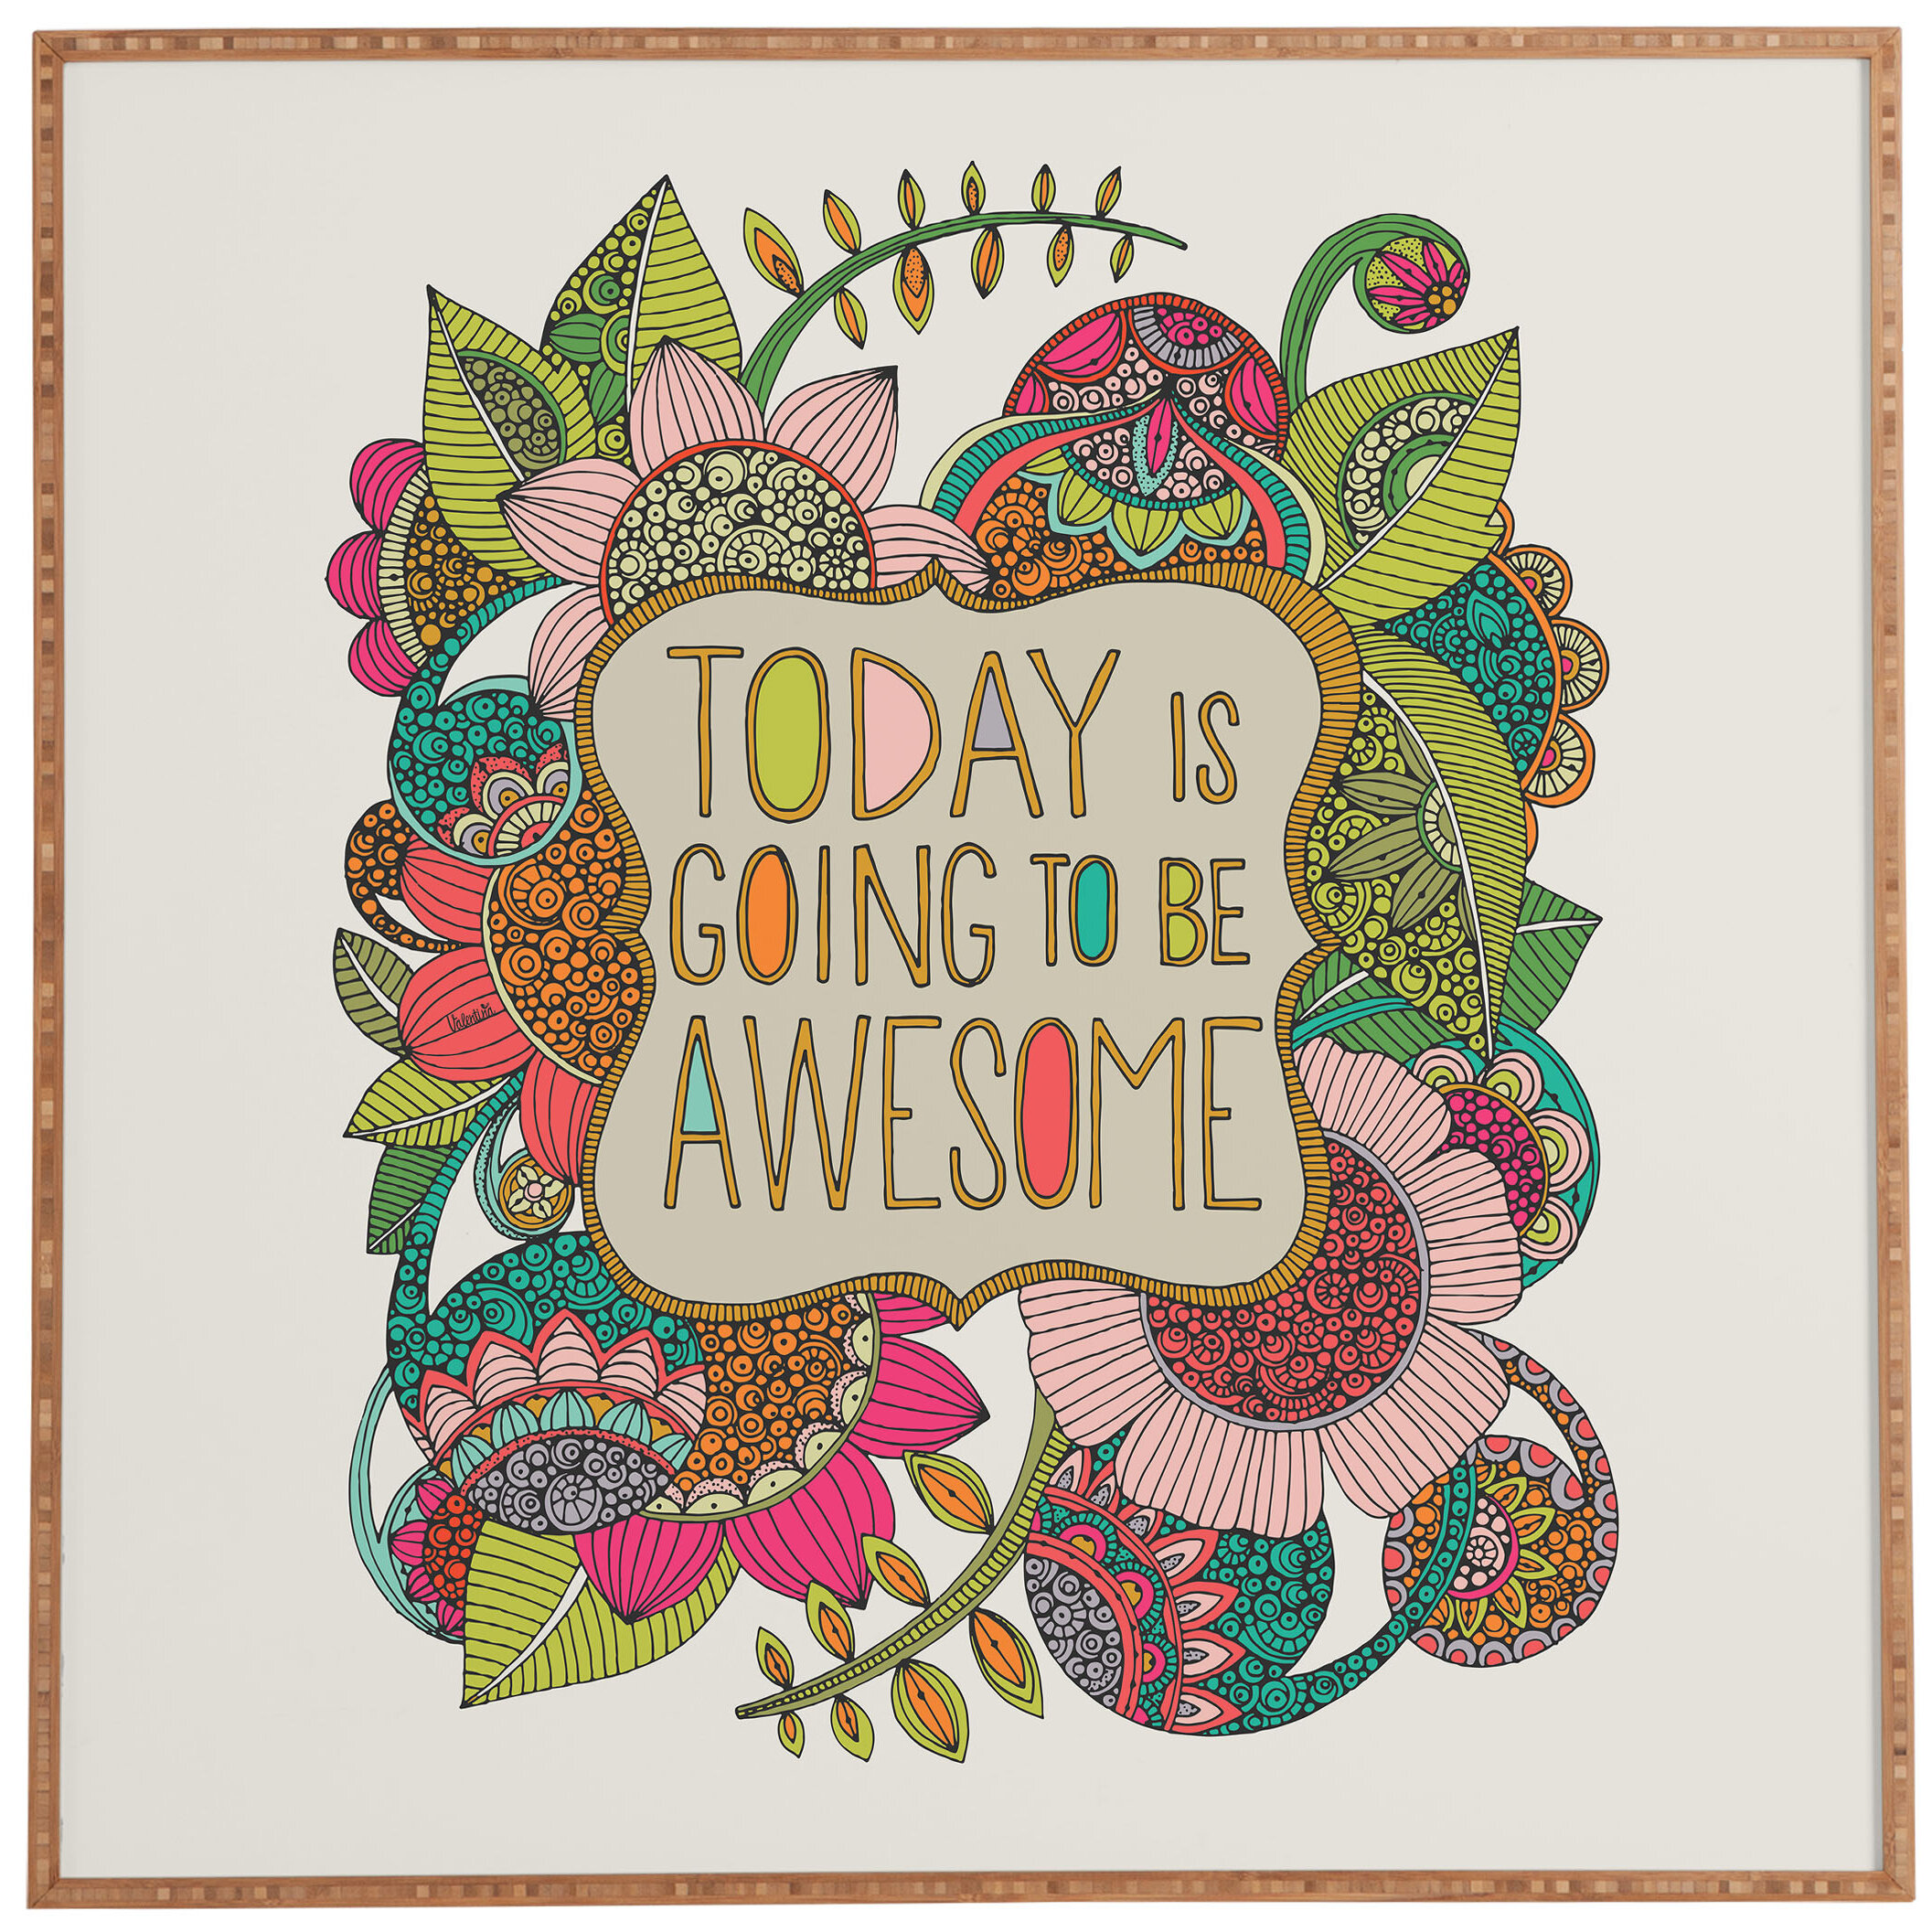 East Urban Home Today Is Going To Be Awesome By Valentina Ramos Textual Art Print Wayfair